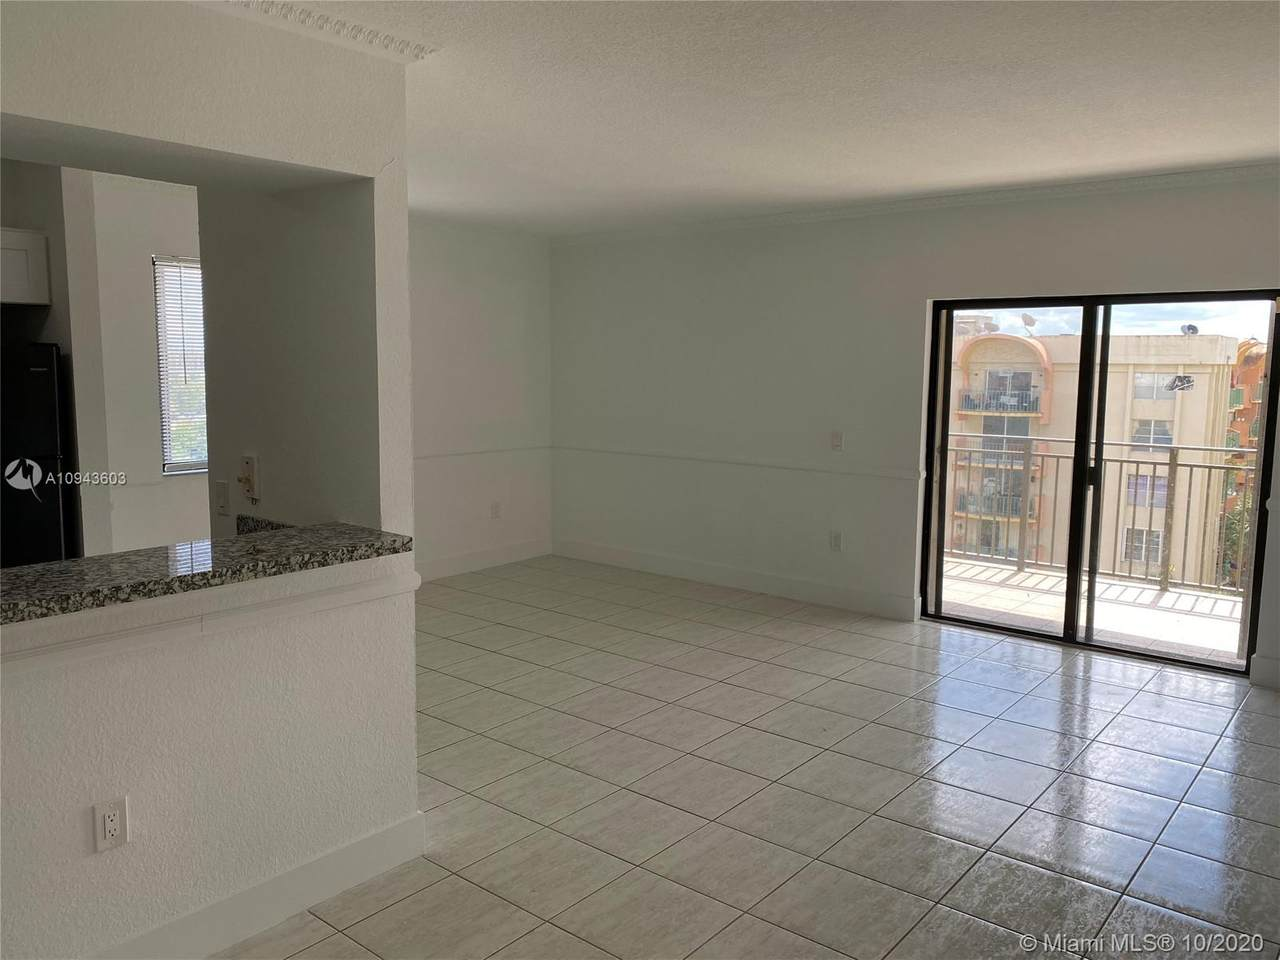 9300 Fontainebleau Blvd - Photo 1